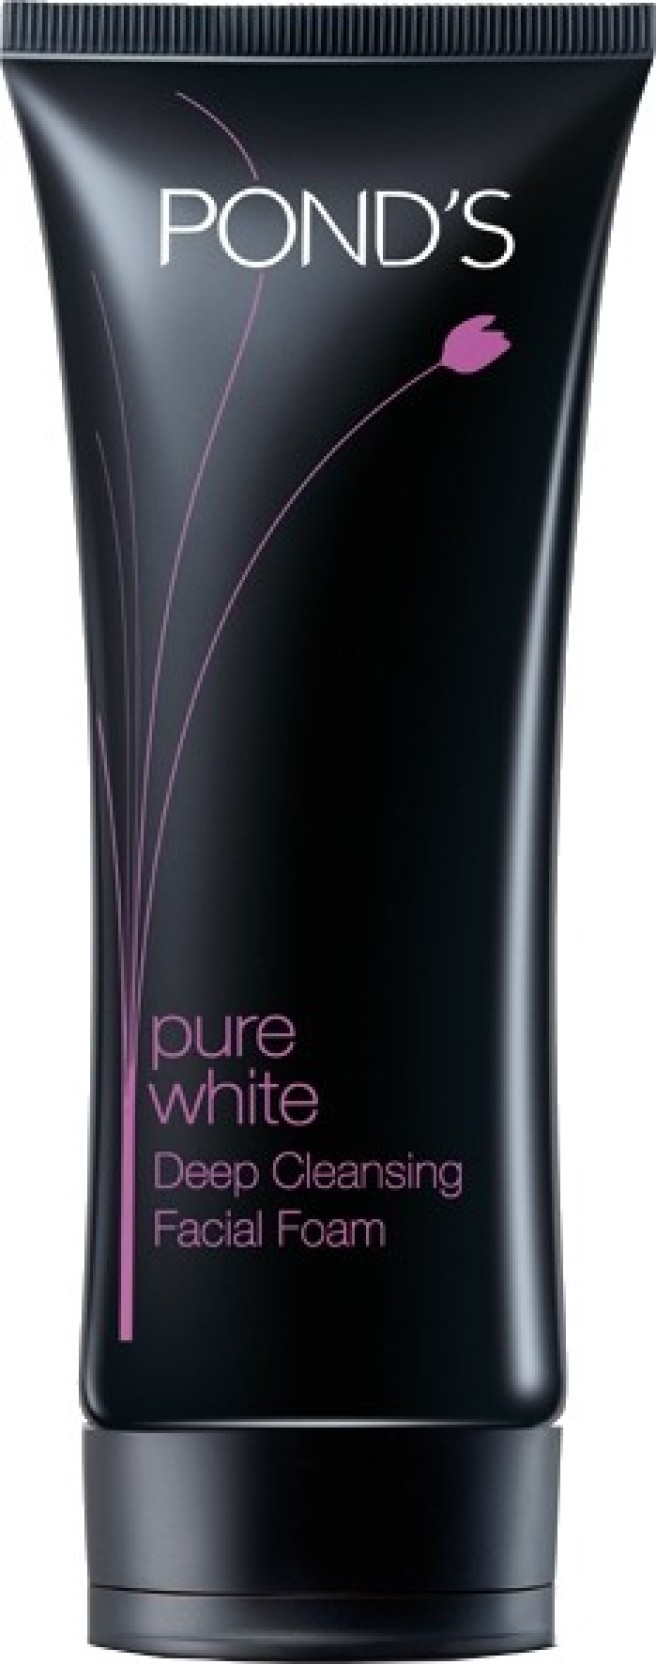 Ponds Pure White Deep Cleansing Face Wash Price In India Buy Dove Facial Foam 100 Gr Home